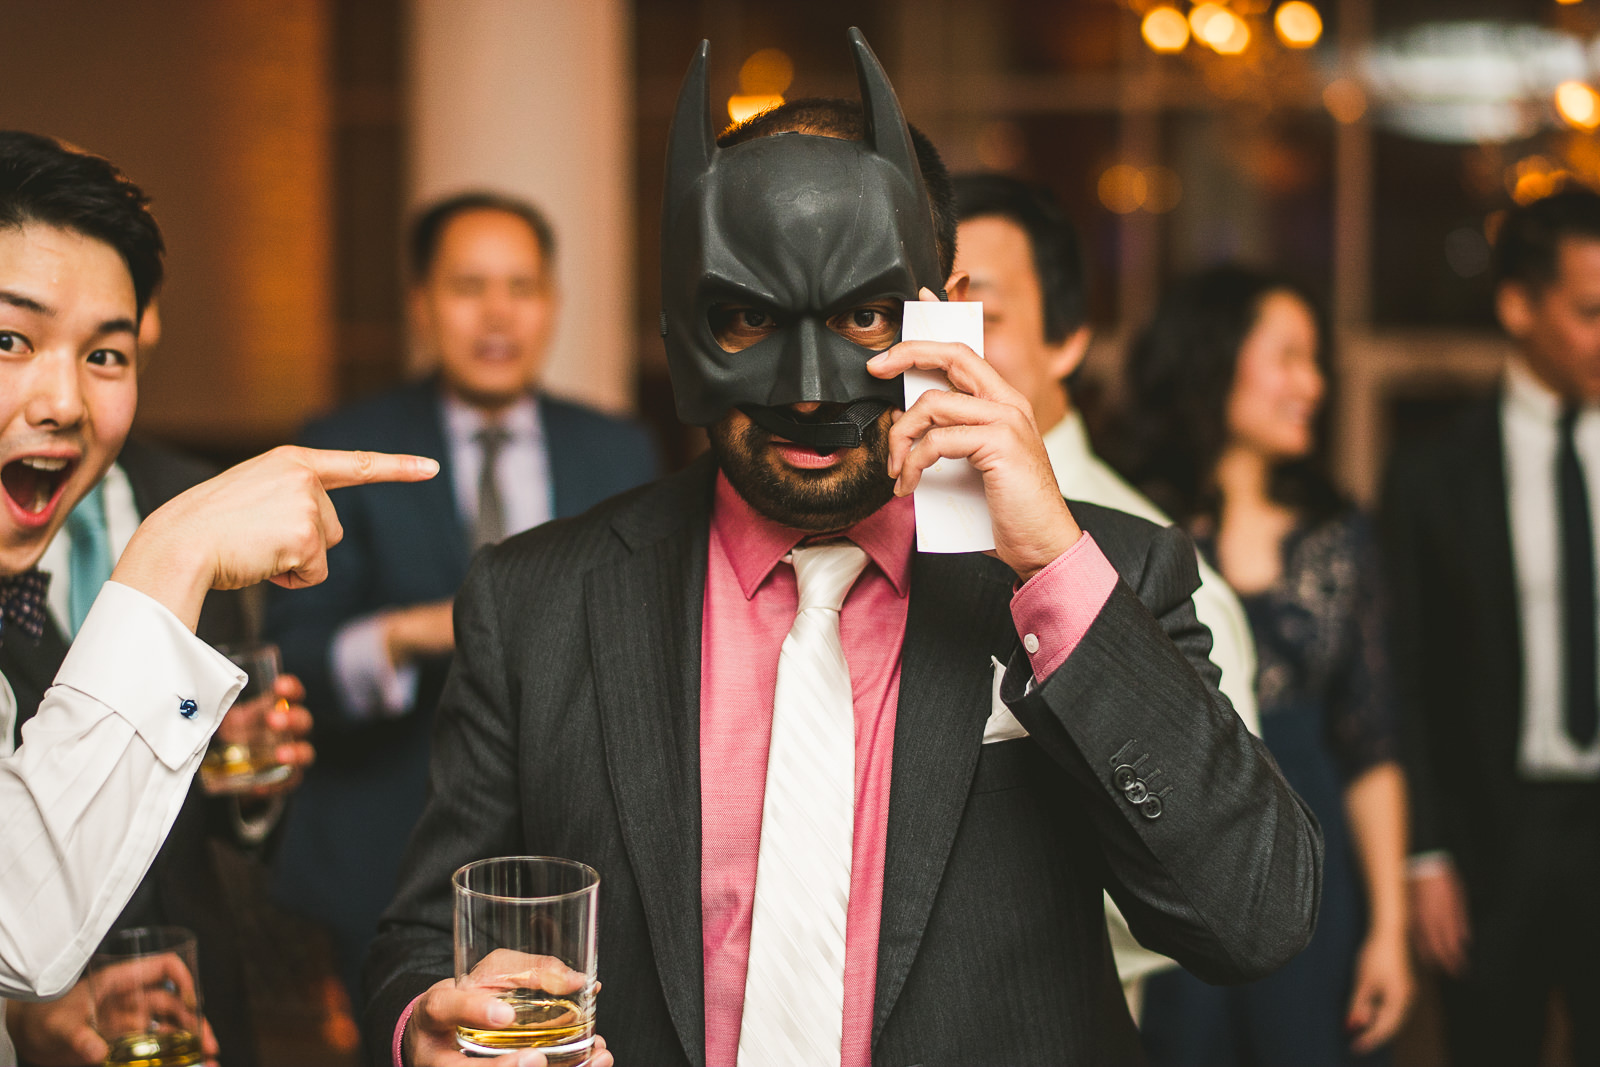 47 batman mask - Rebecca + Doha // Wedding Photos at Room 1520 Chicago